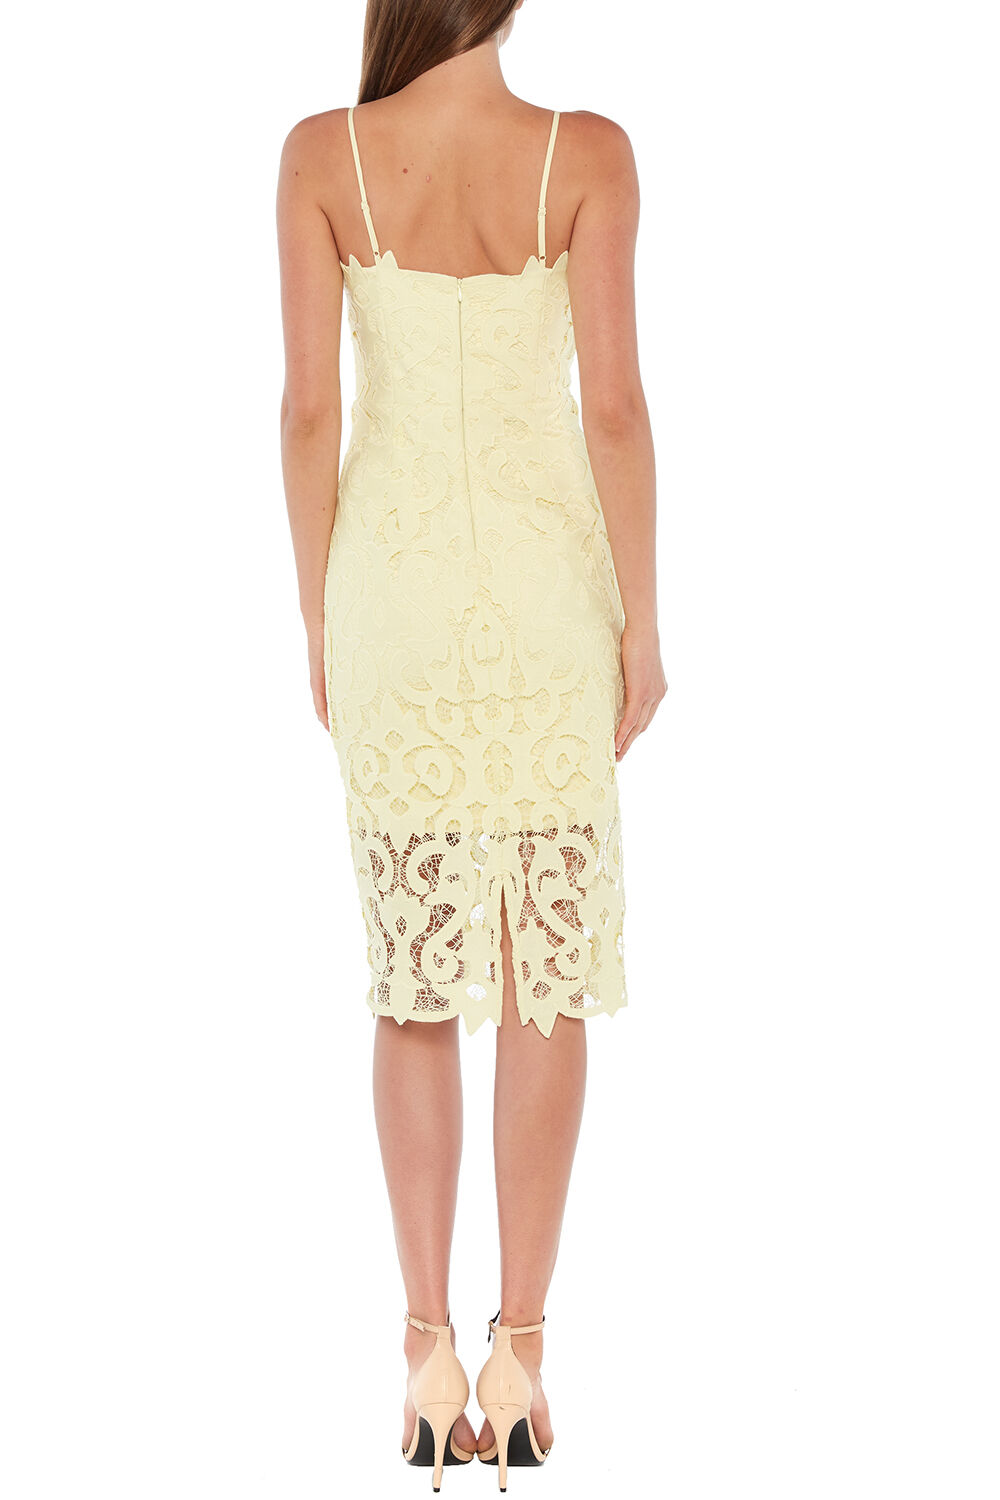 LINA LACE DRESS in colour FRENCH VANILLA